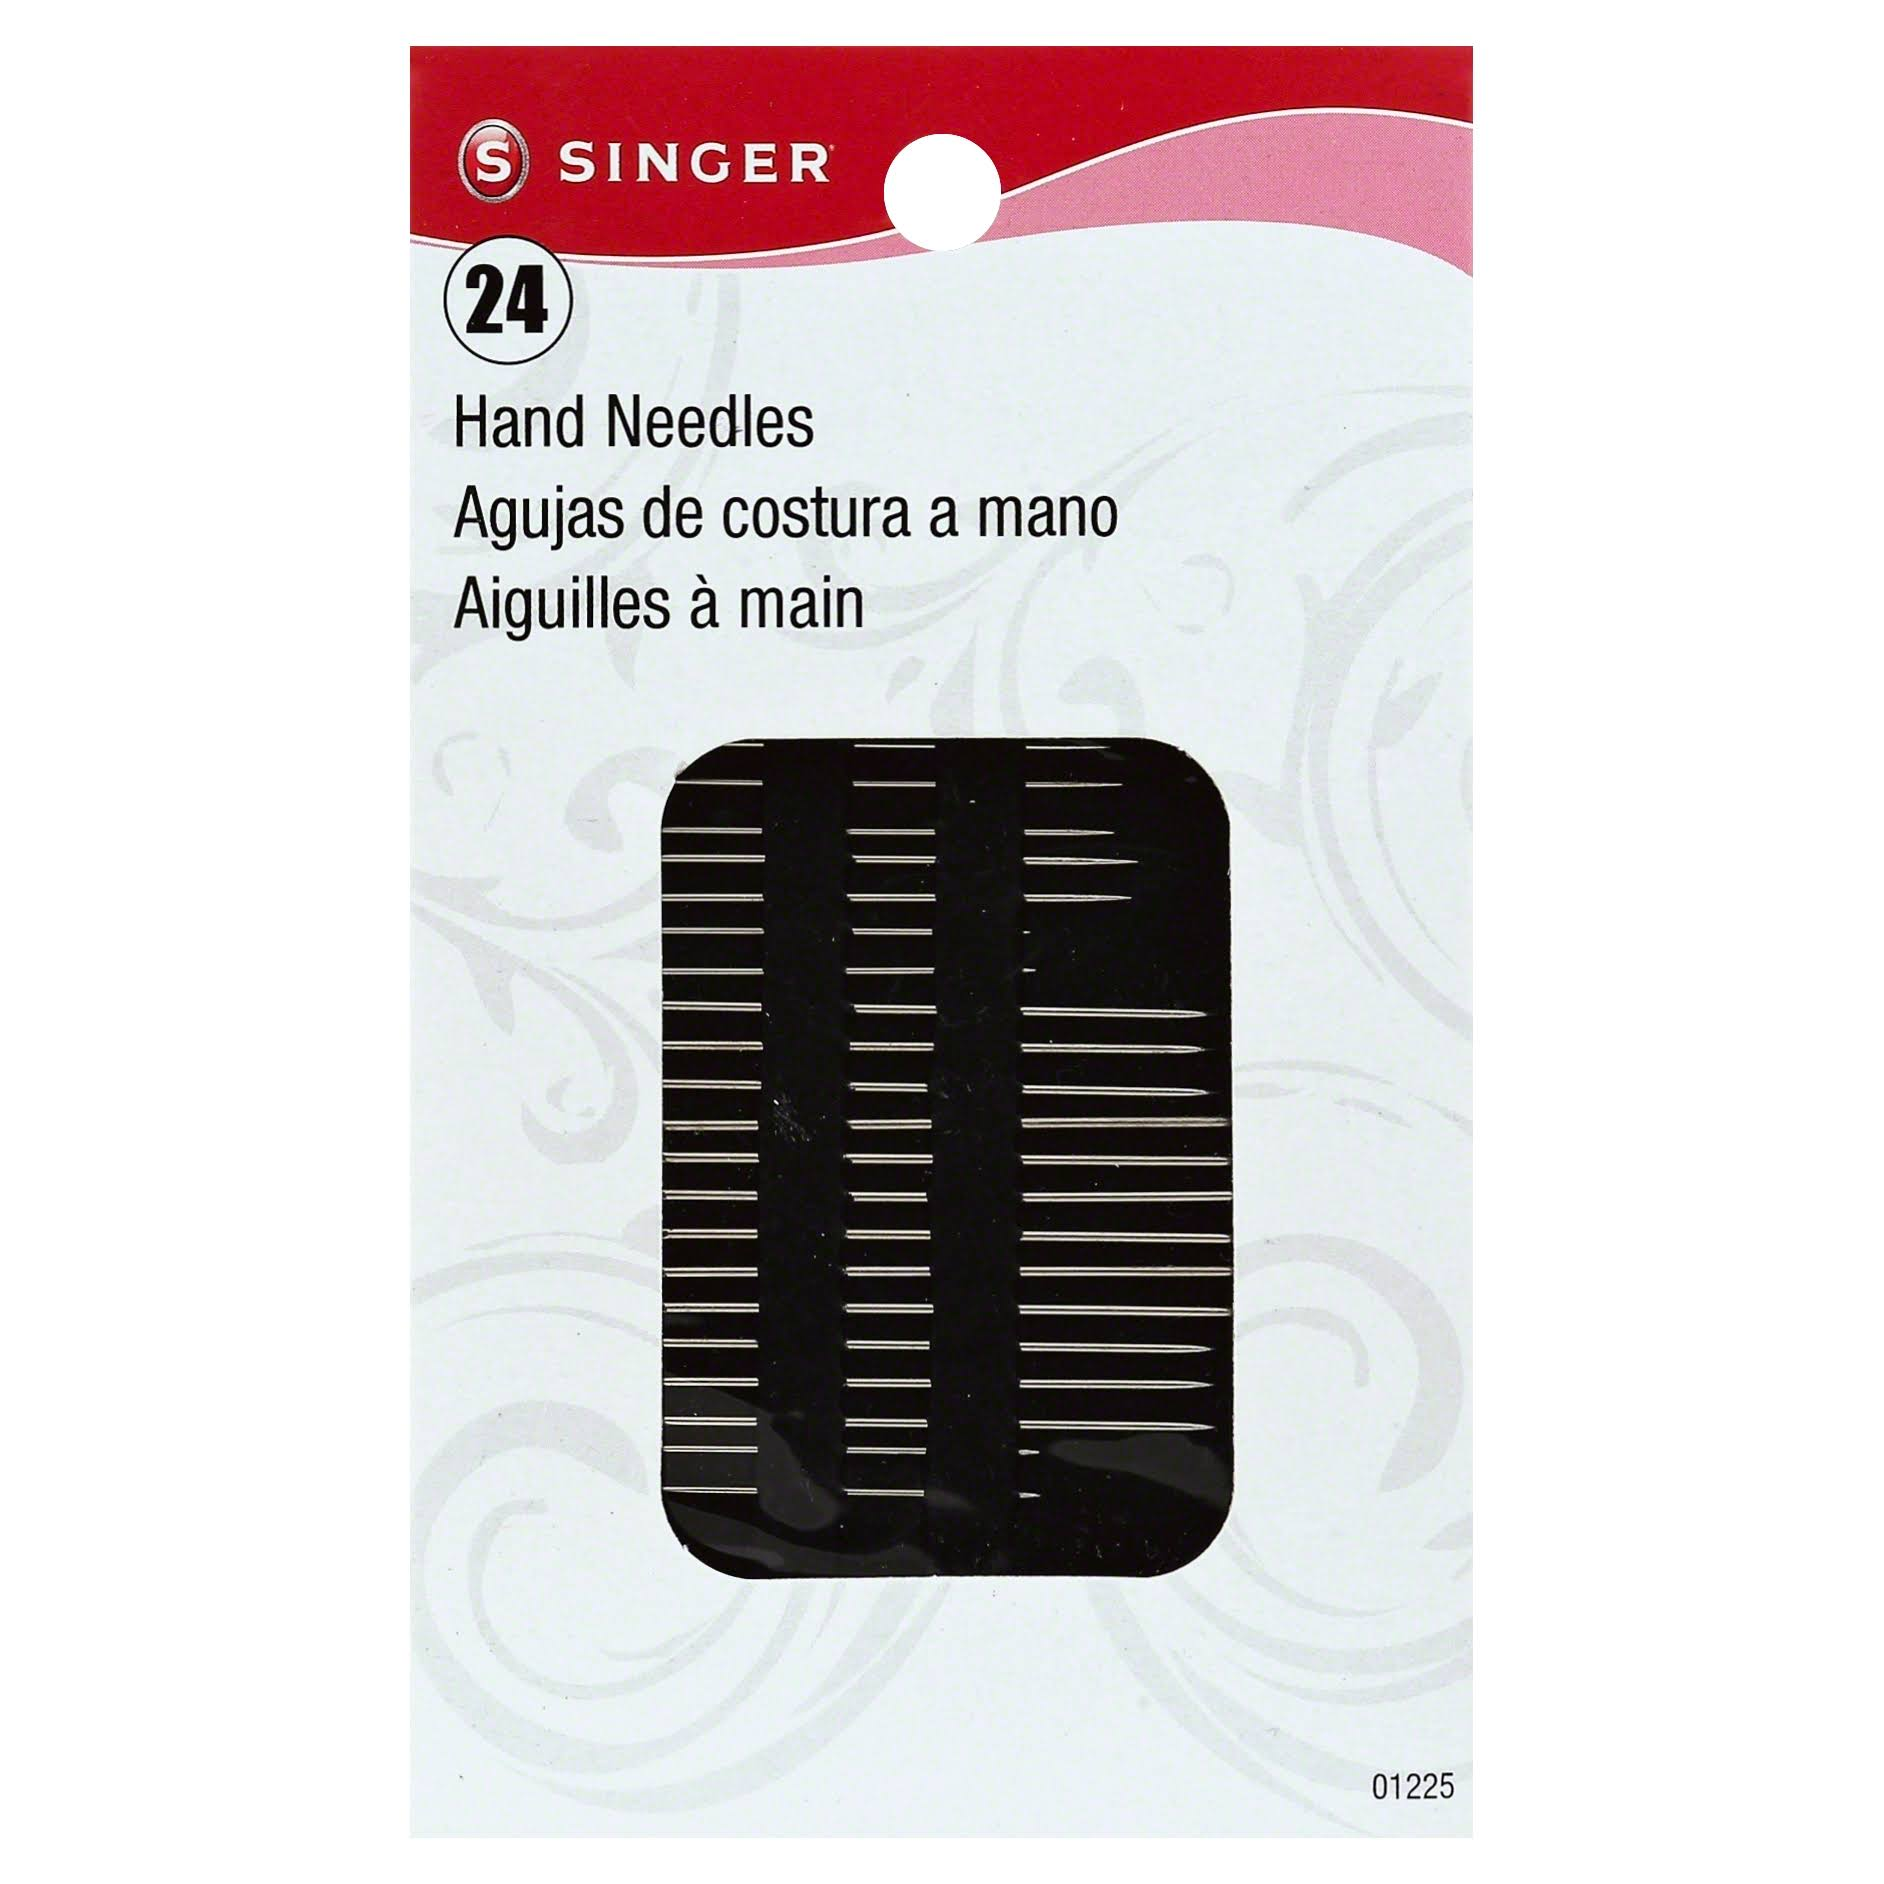 Singer 1225 Assorted Hand Needles - 24ct